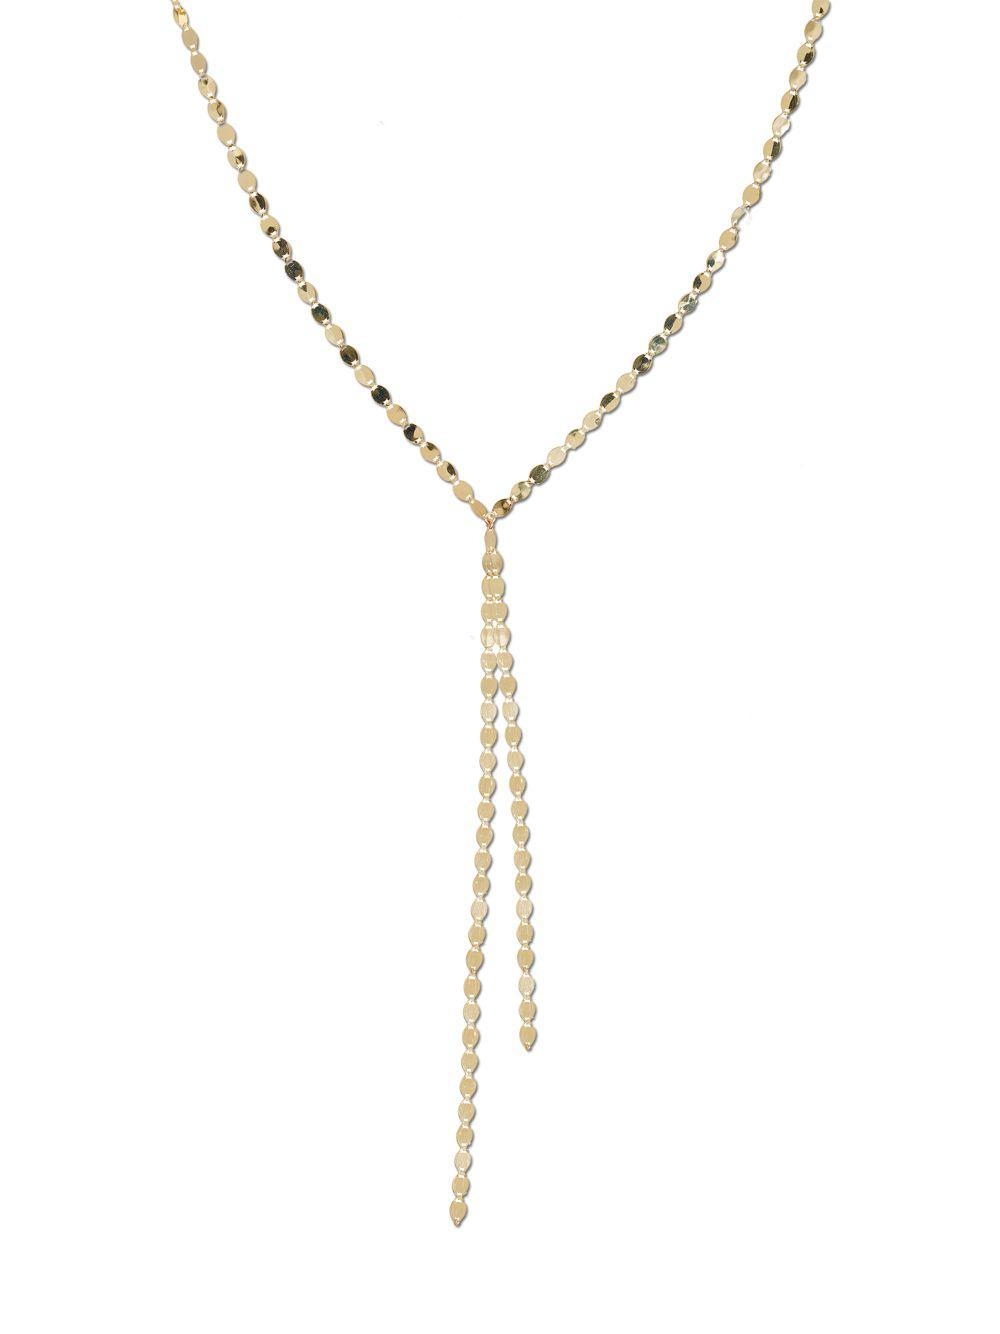 Lana Jewelry 14k Nude Duo Layering Necklace in Yellow Gold